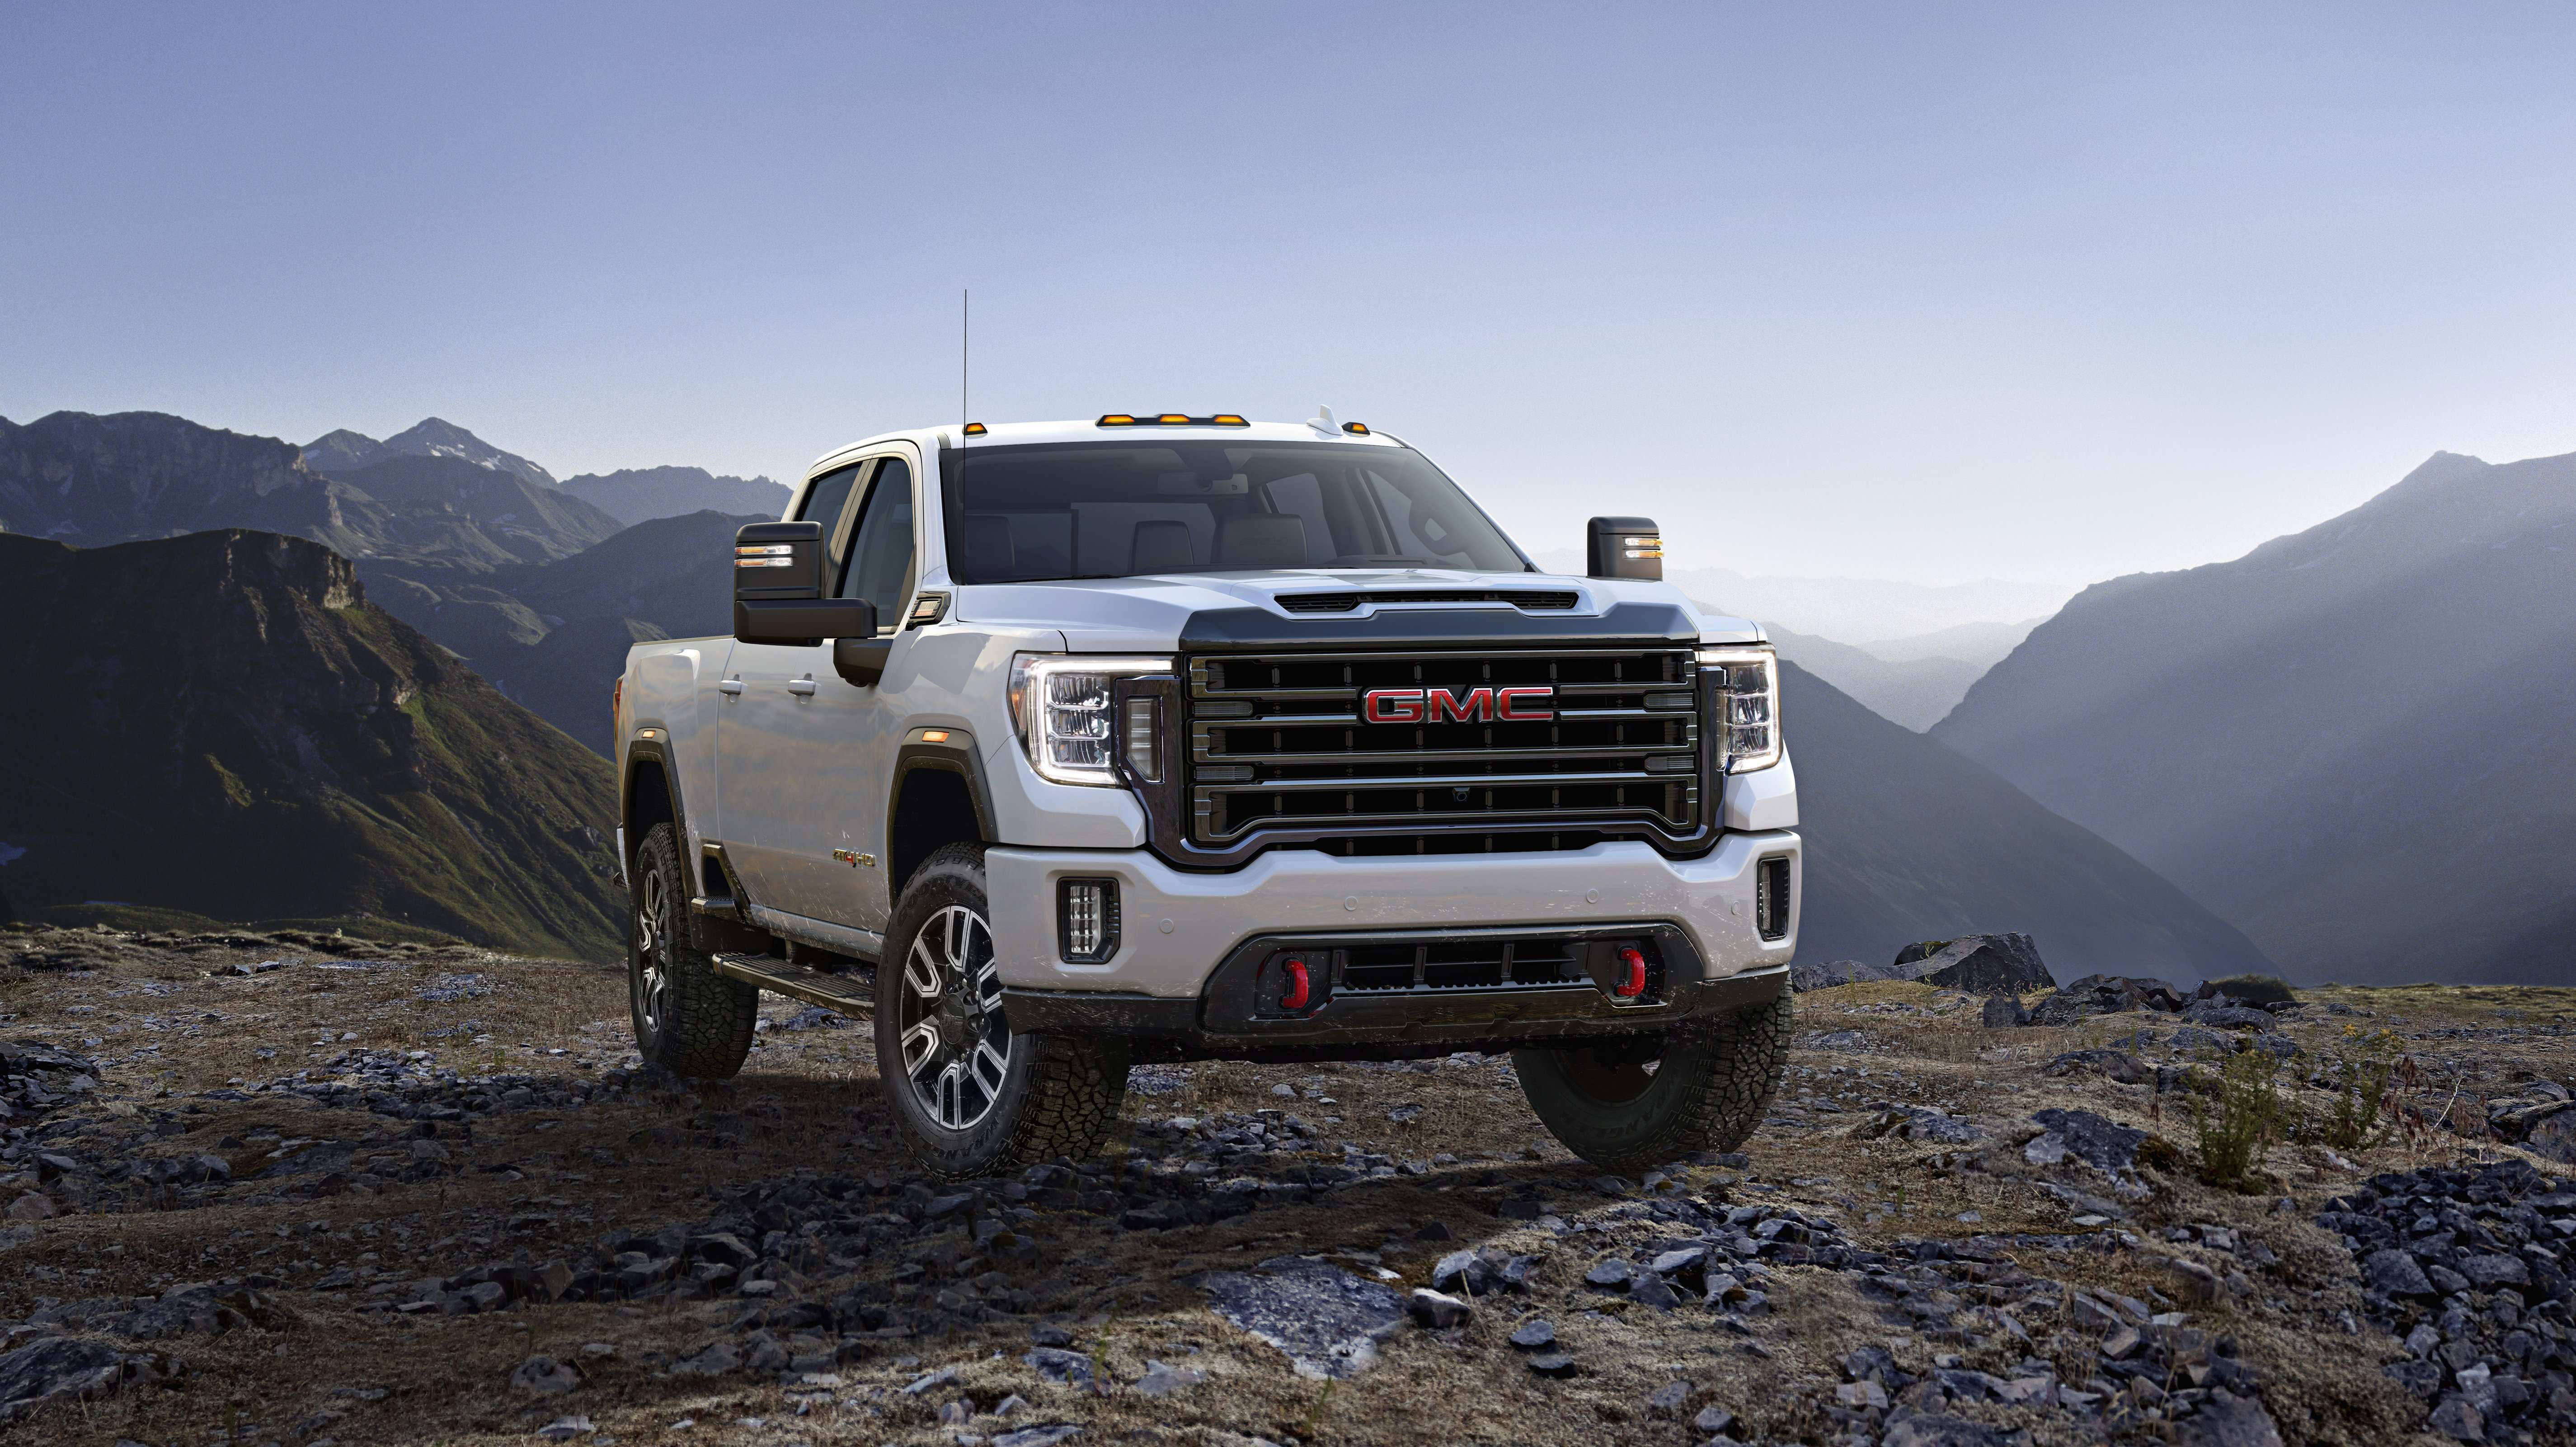 98 A GMC Hd 2020 At4 Rumors